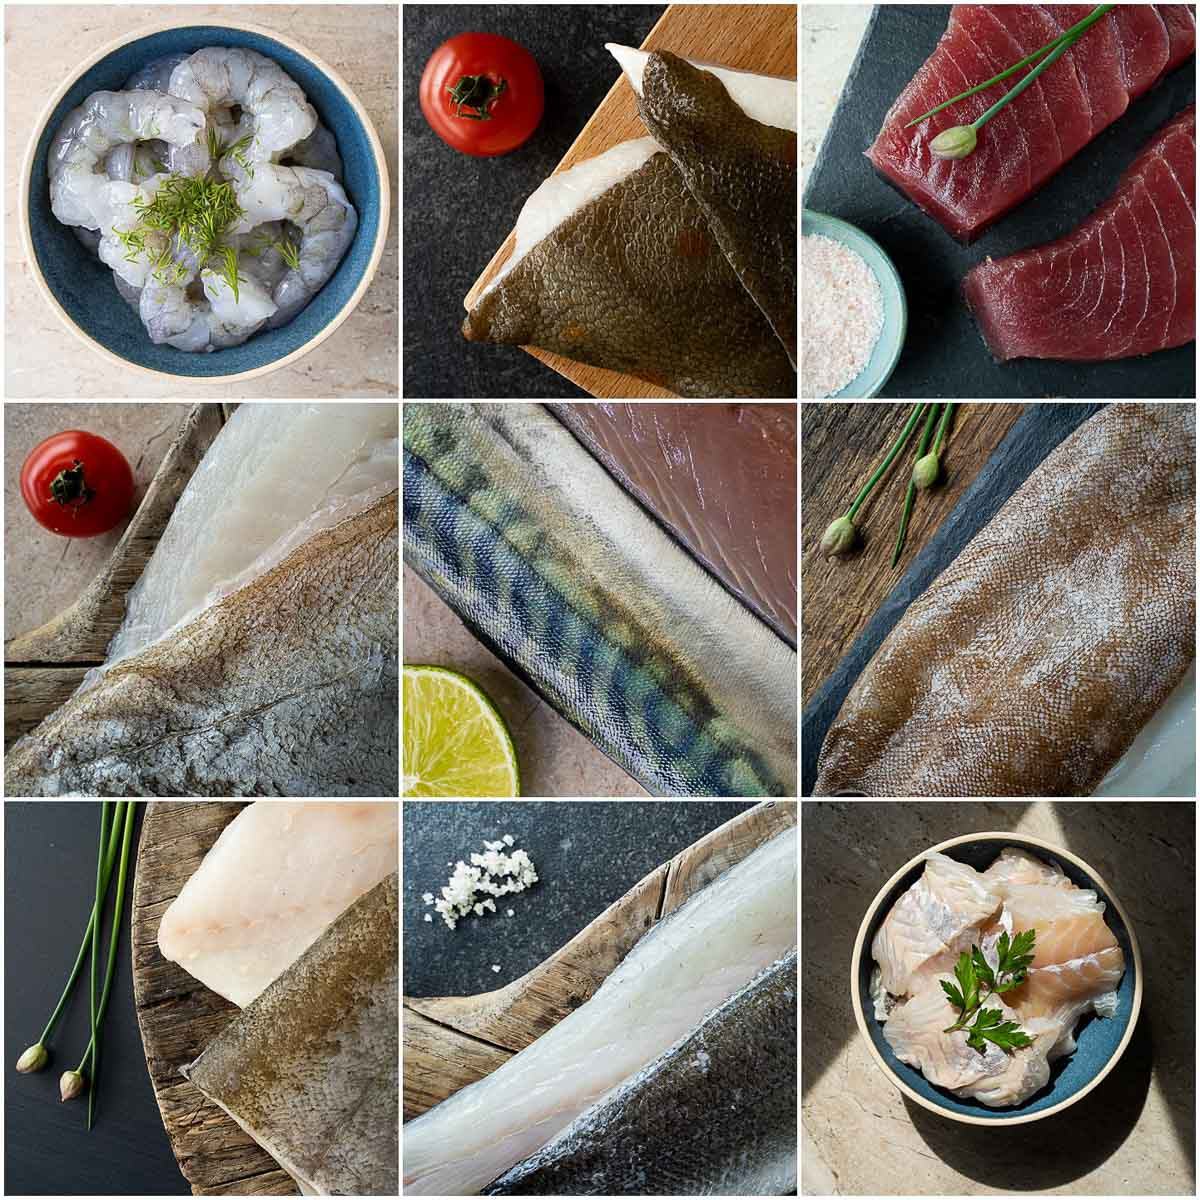 Montage of nine different fish images photographed as part of a food photography project for the Fresh Fish Shop in Haywards Heath